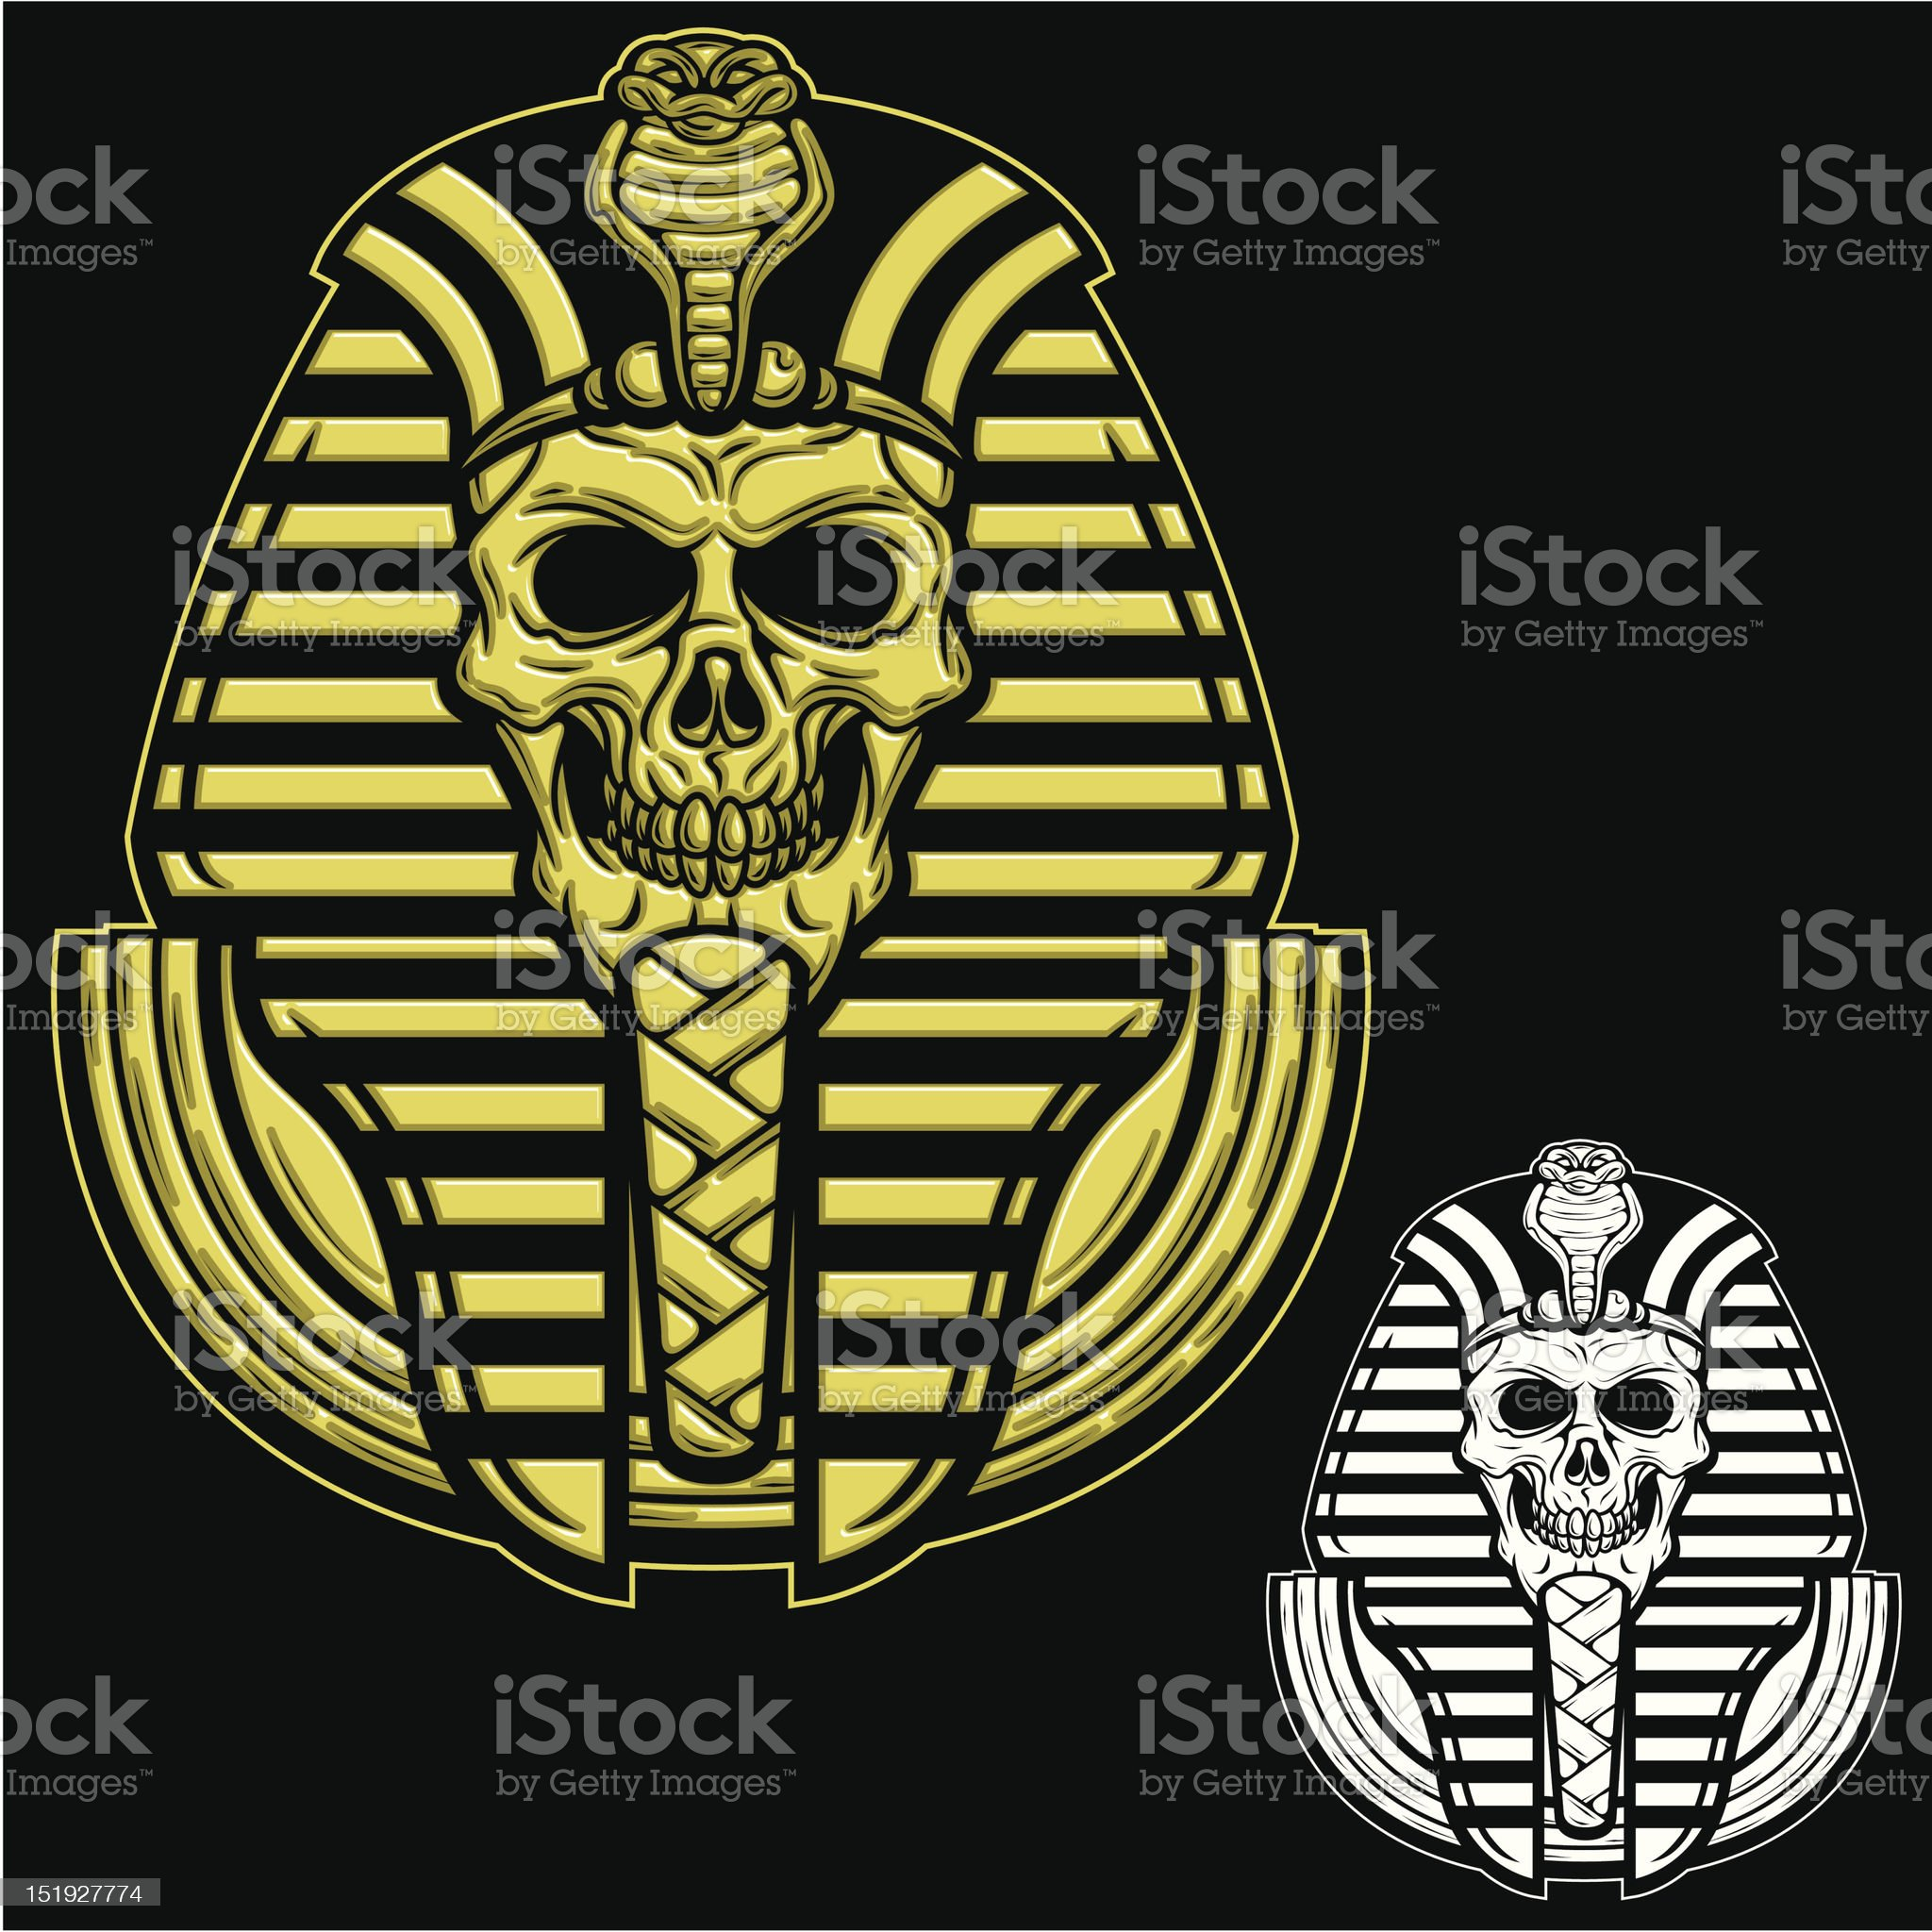 Pharaoh Skull royalty-free stock vector art